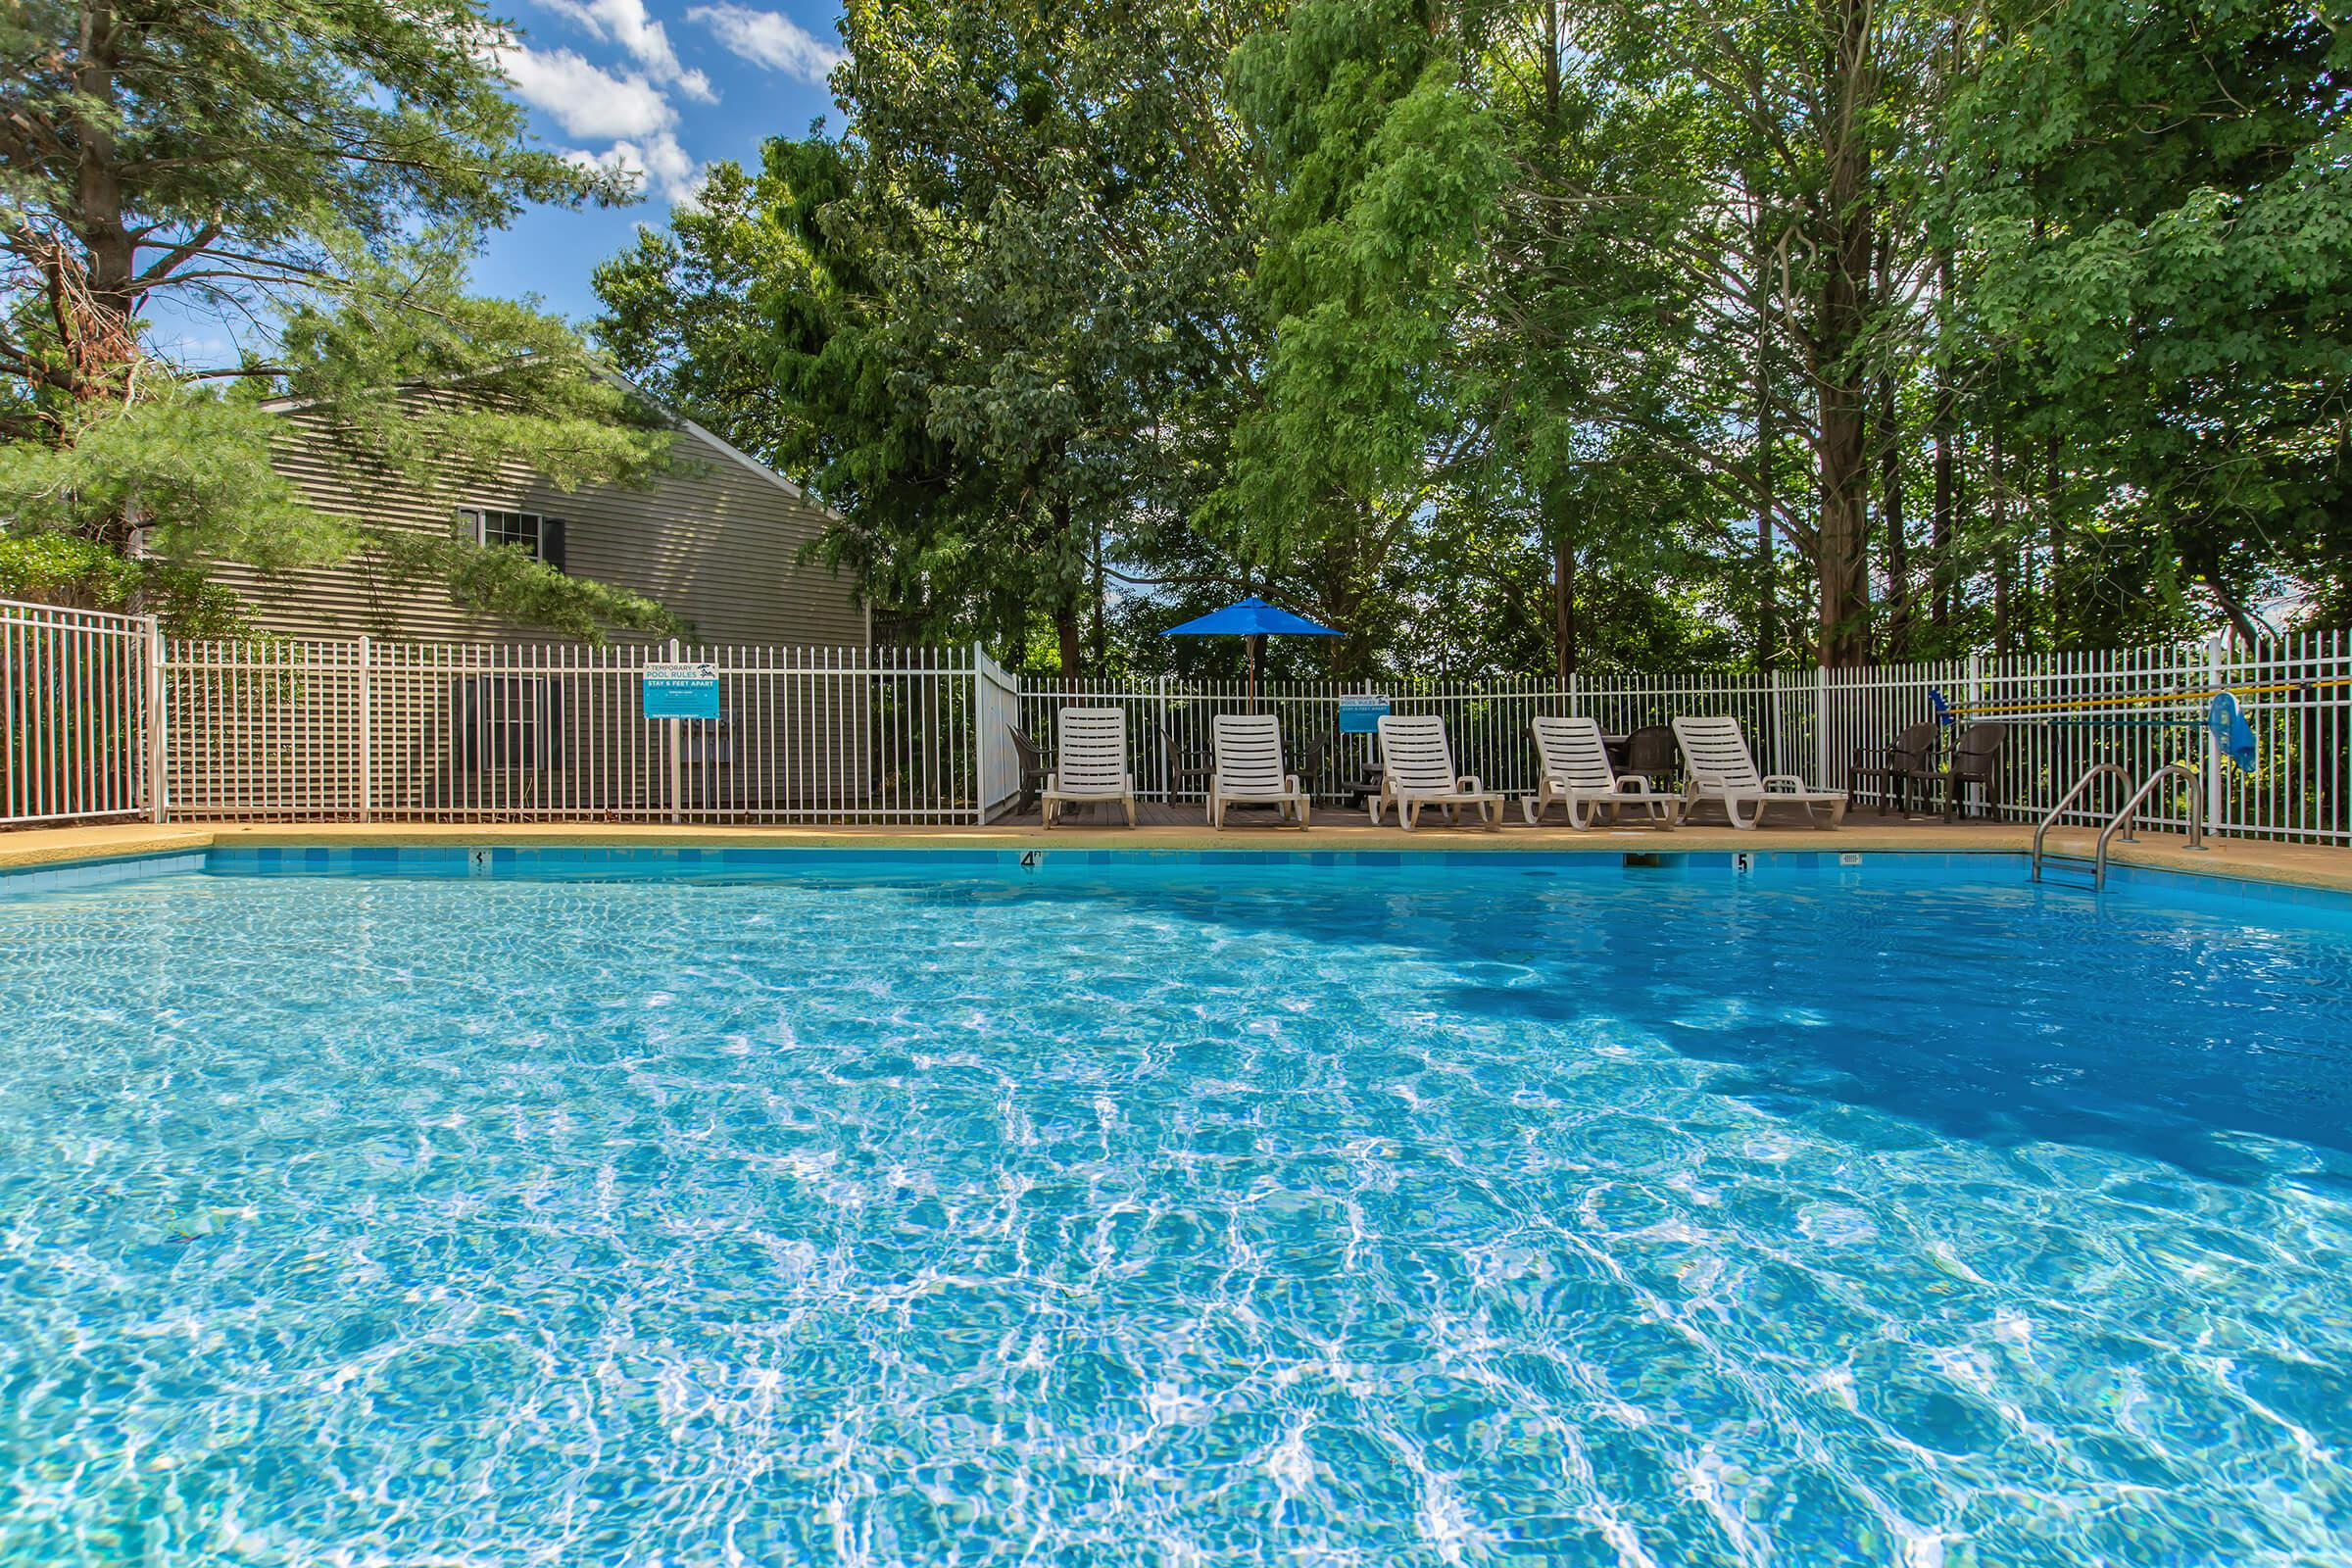 CHILL AND RELAX BY OUR SPARKLING SWIMMING POOL